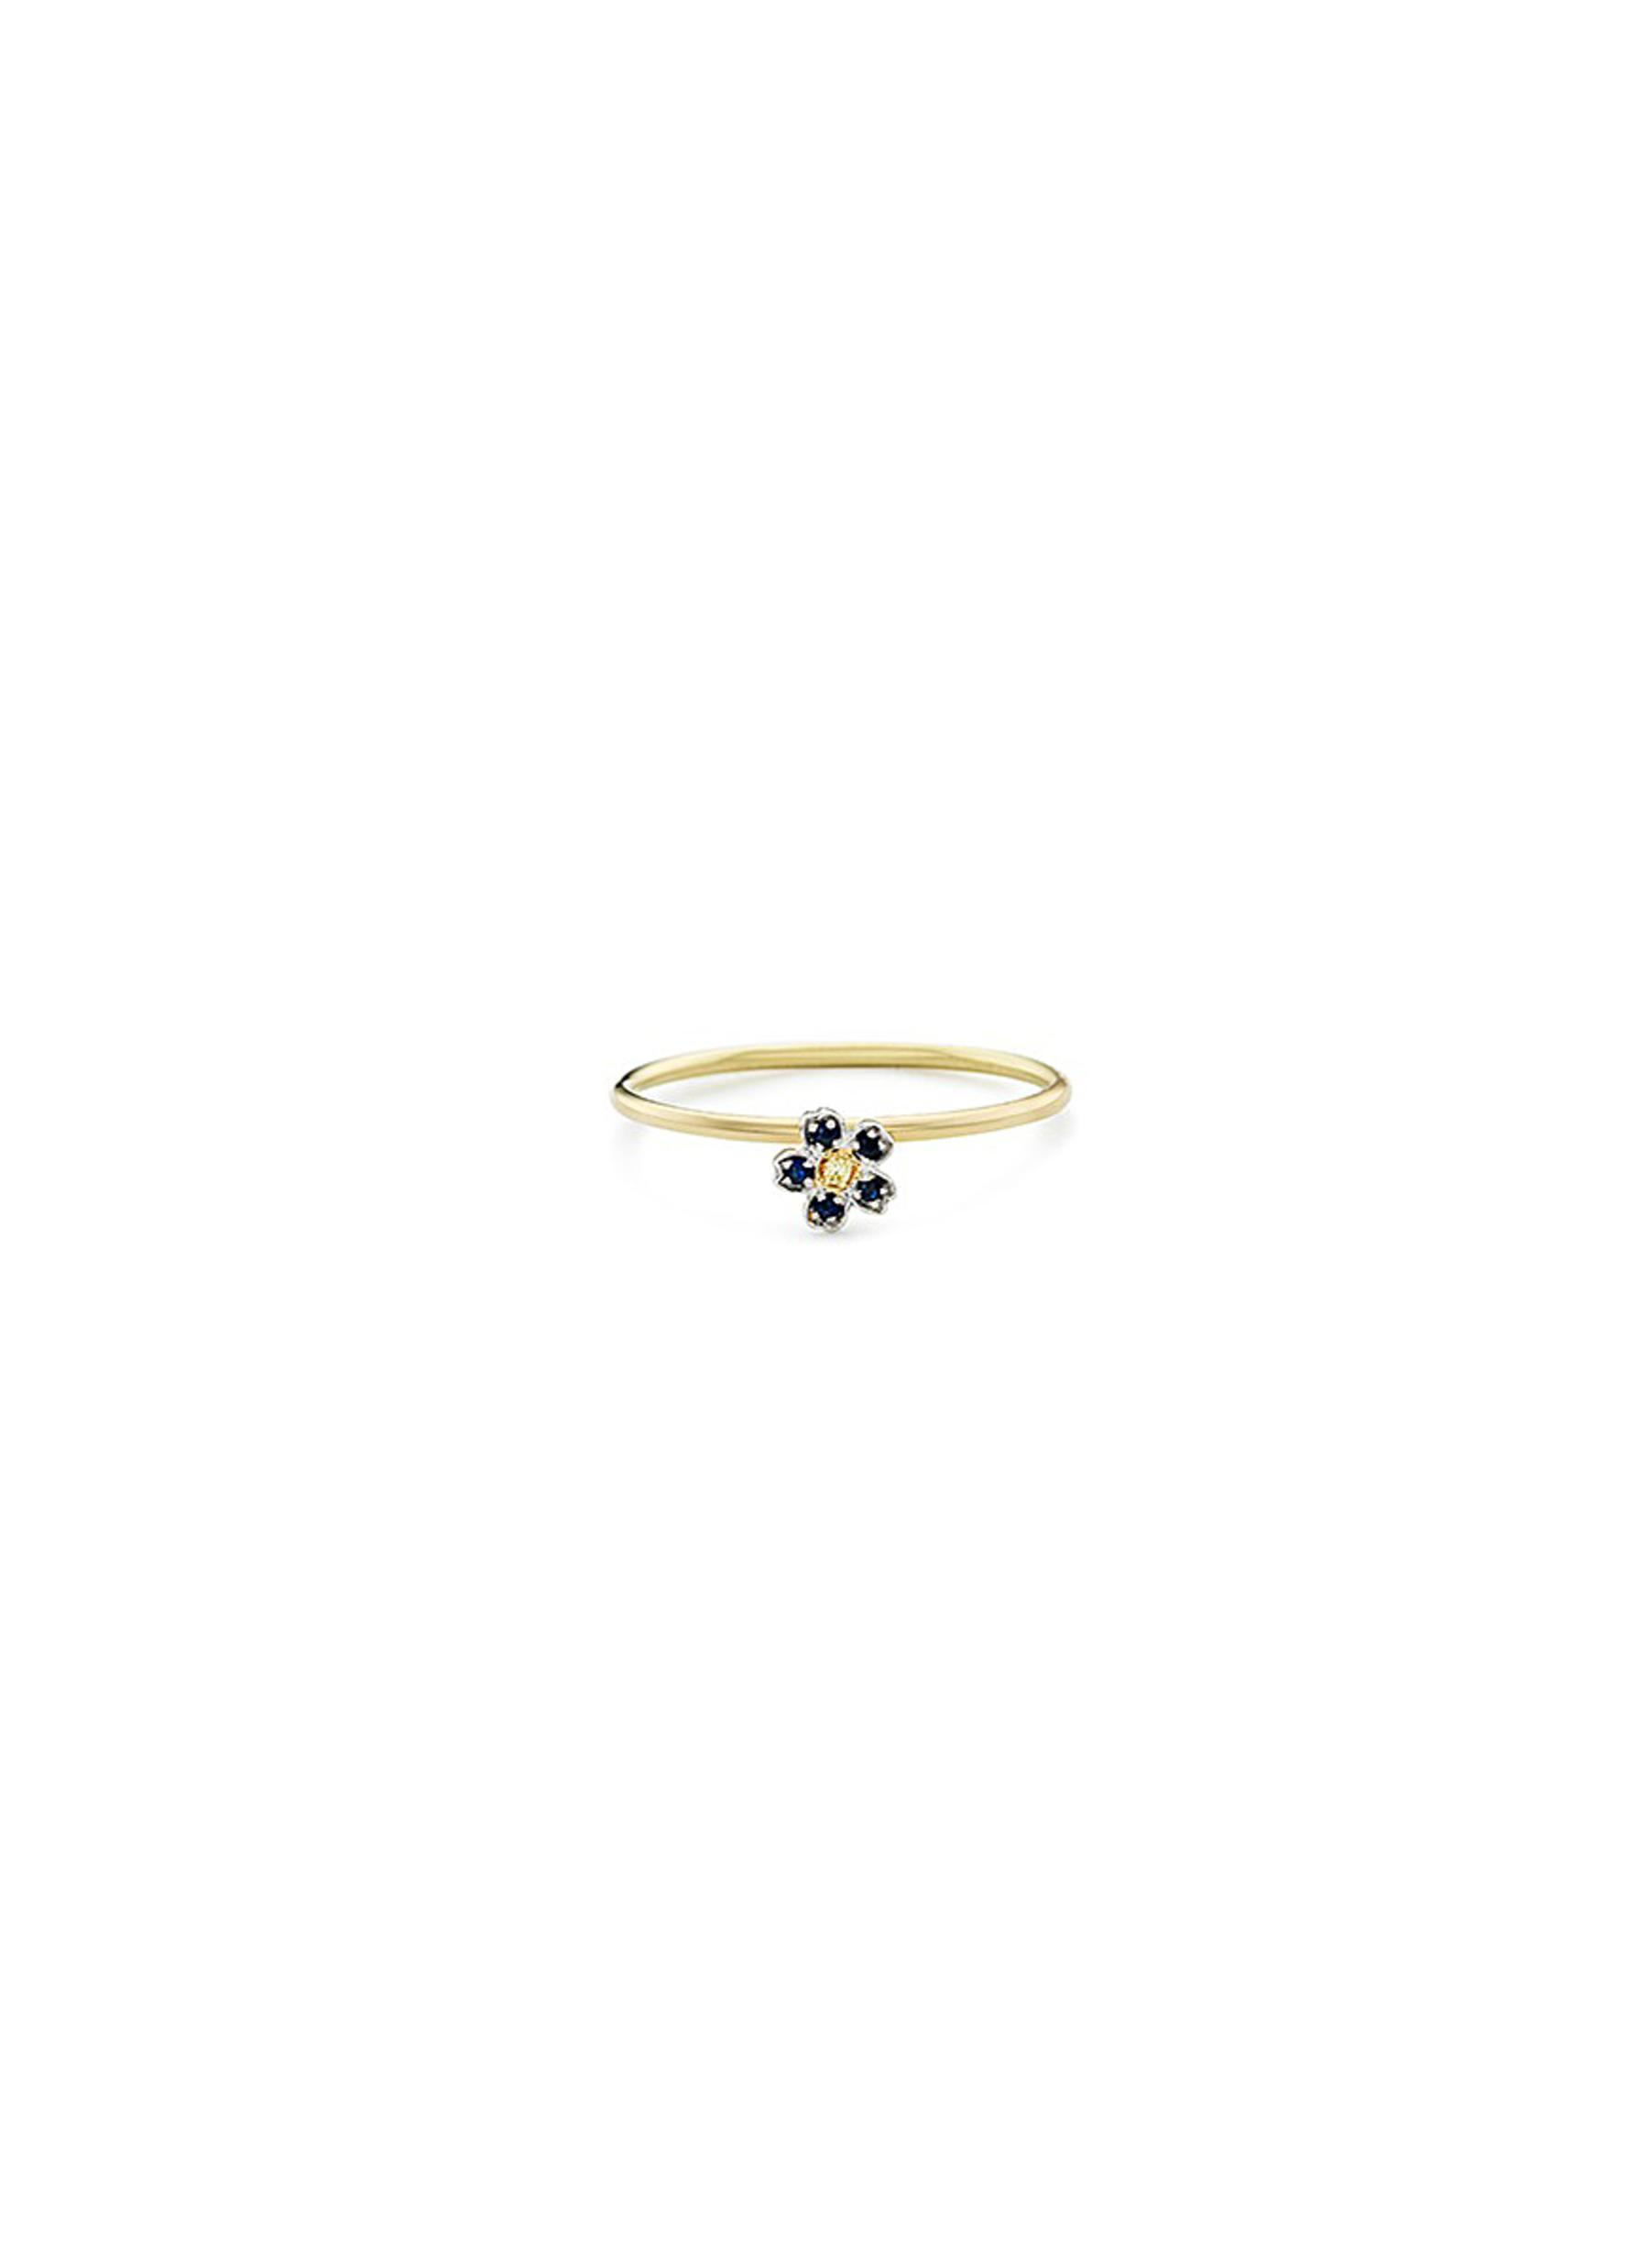 Diamond sapphire 18k yellow gold forget me not ring by Loquet London